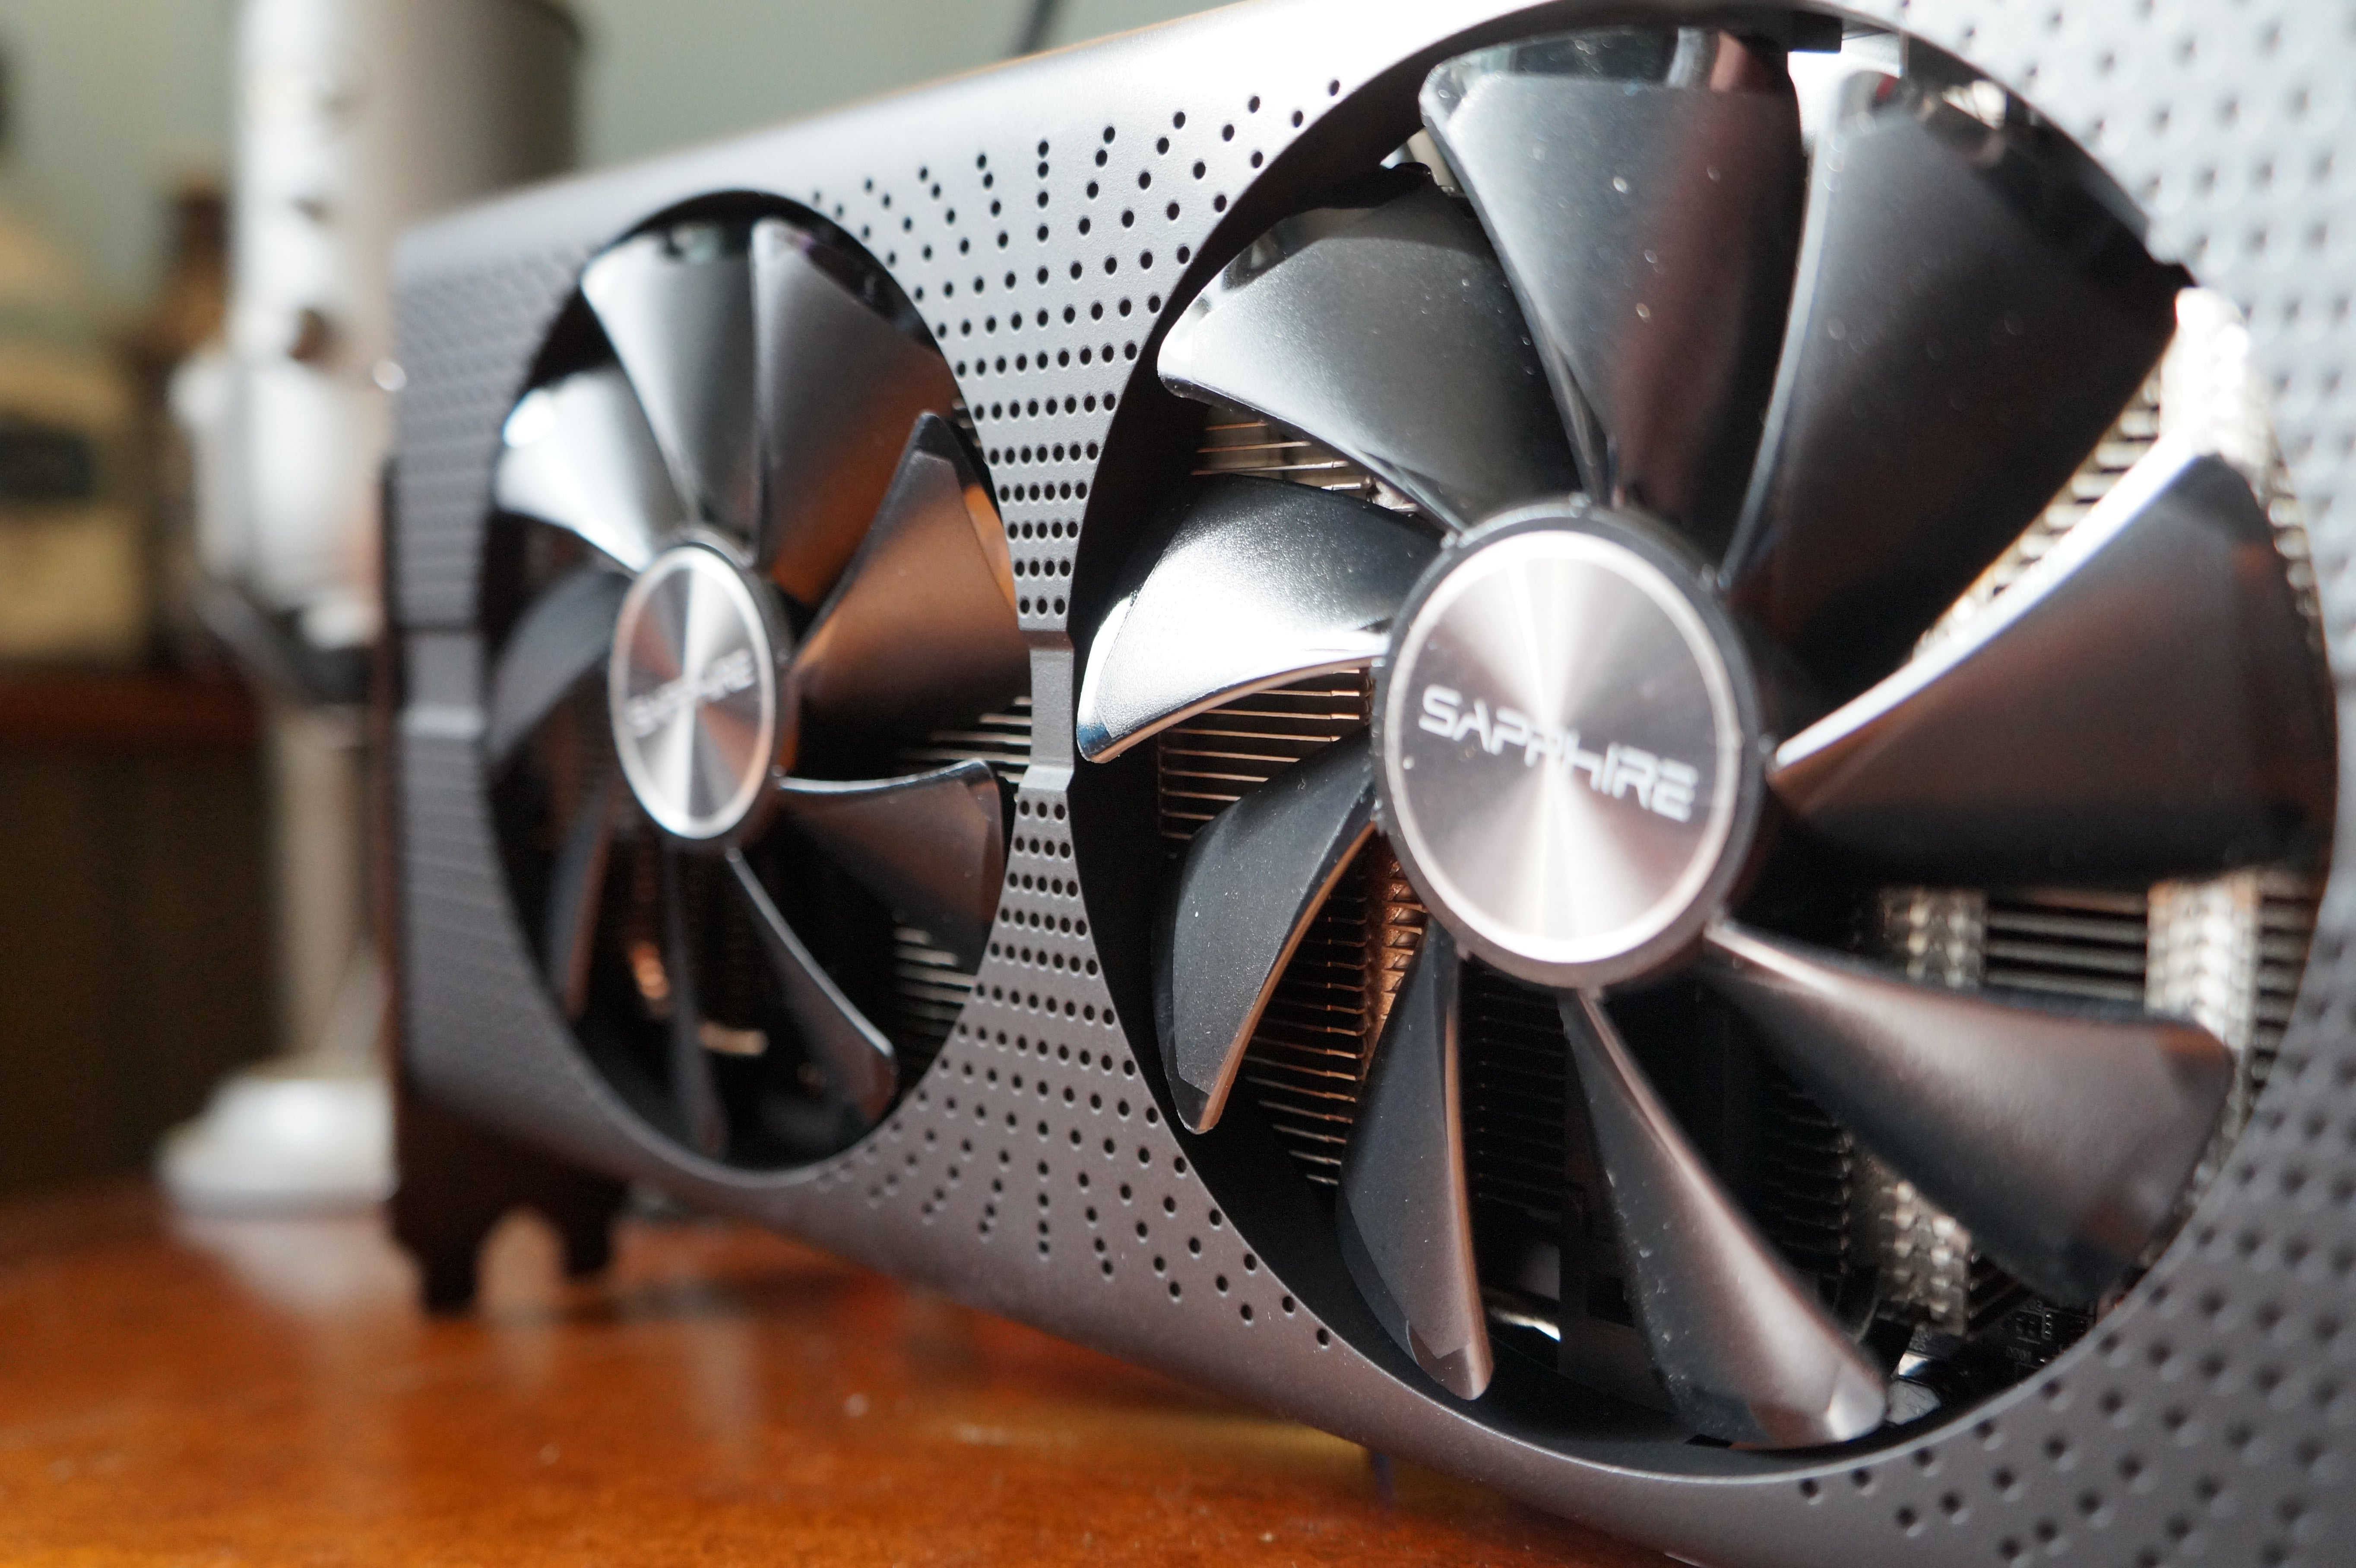 Sapphire Radeon RX 570 Pulse and RX 580 Pulse review: Solid